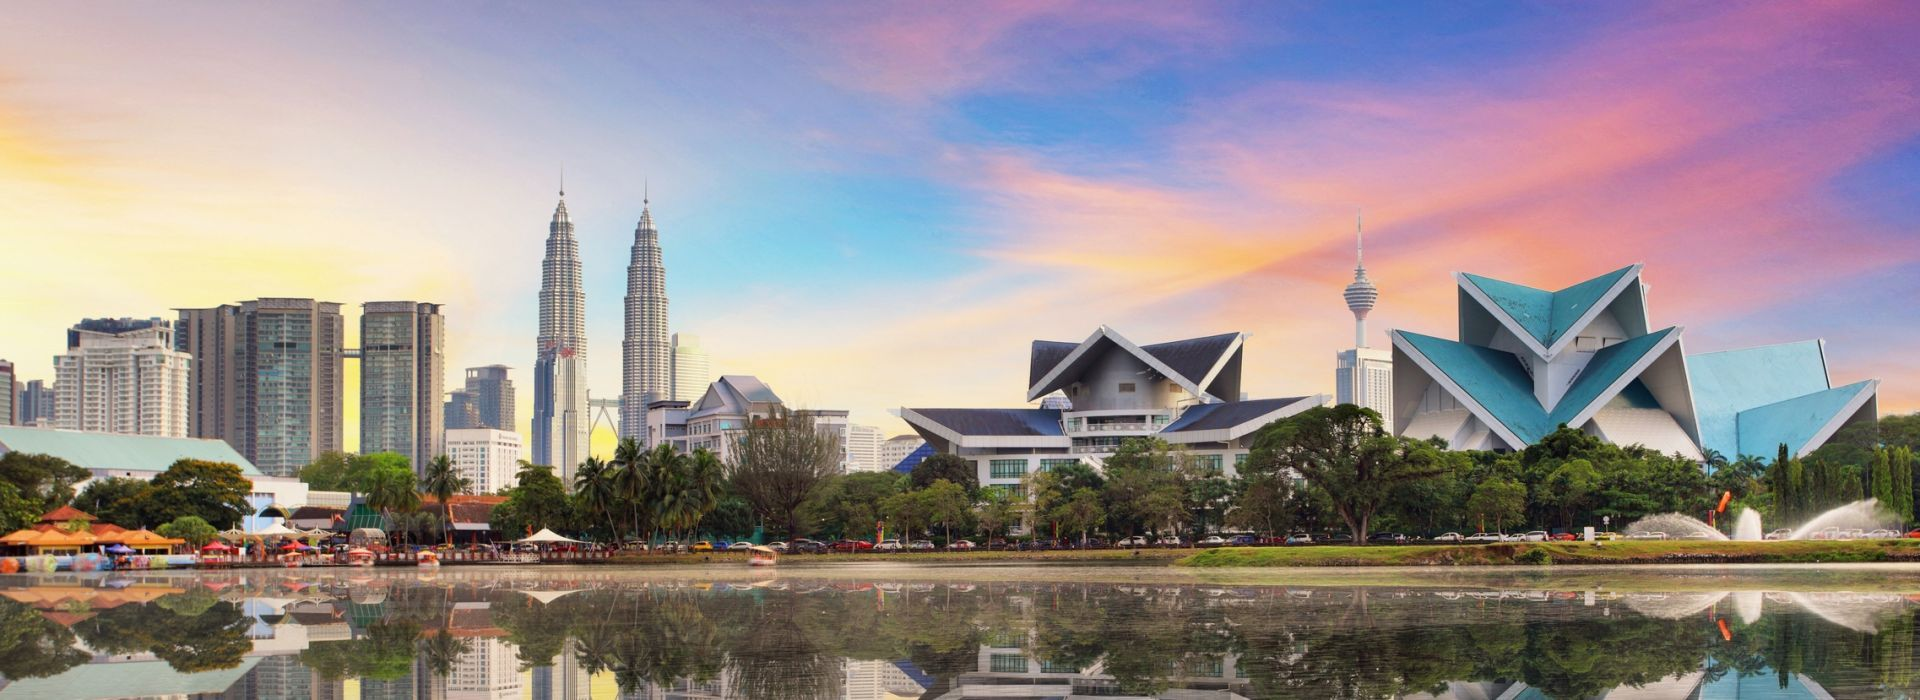 Sightseeing, attractions, culture and history Tours in Malaysia